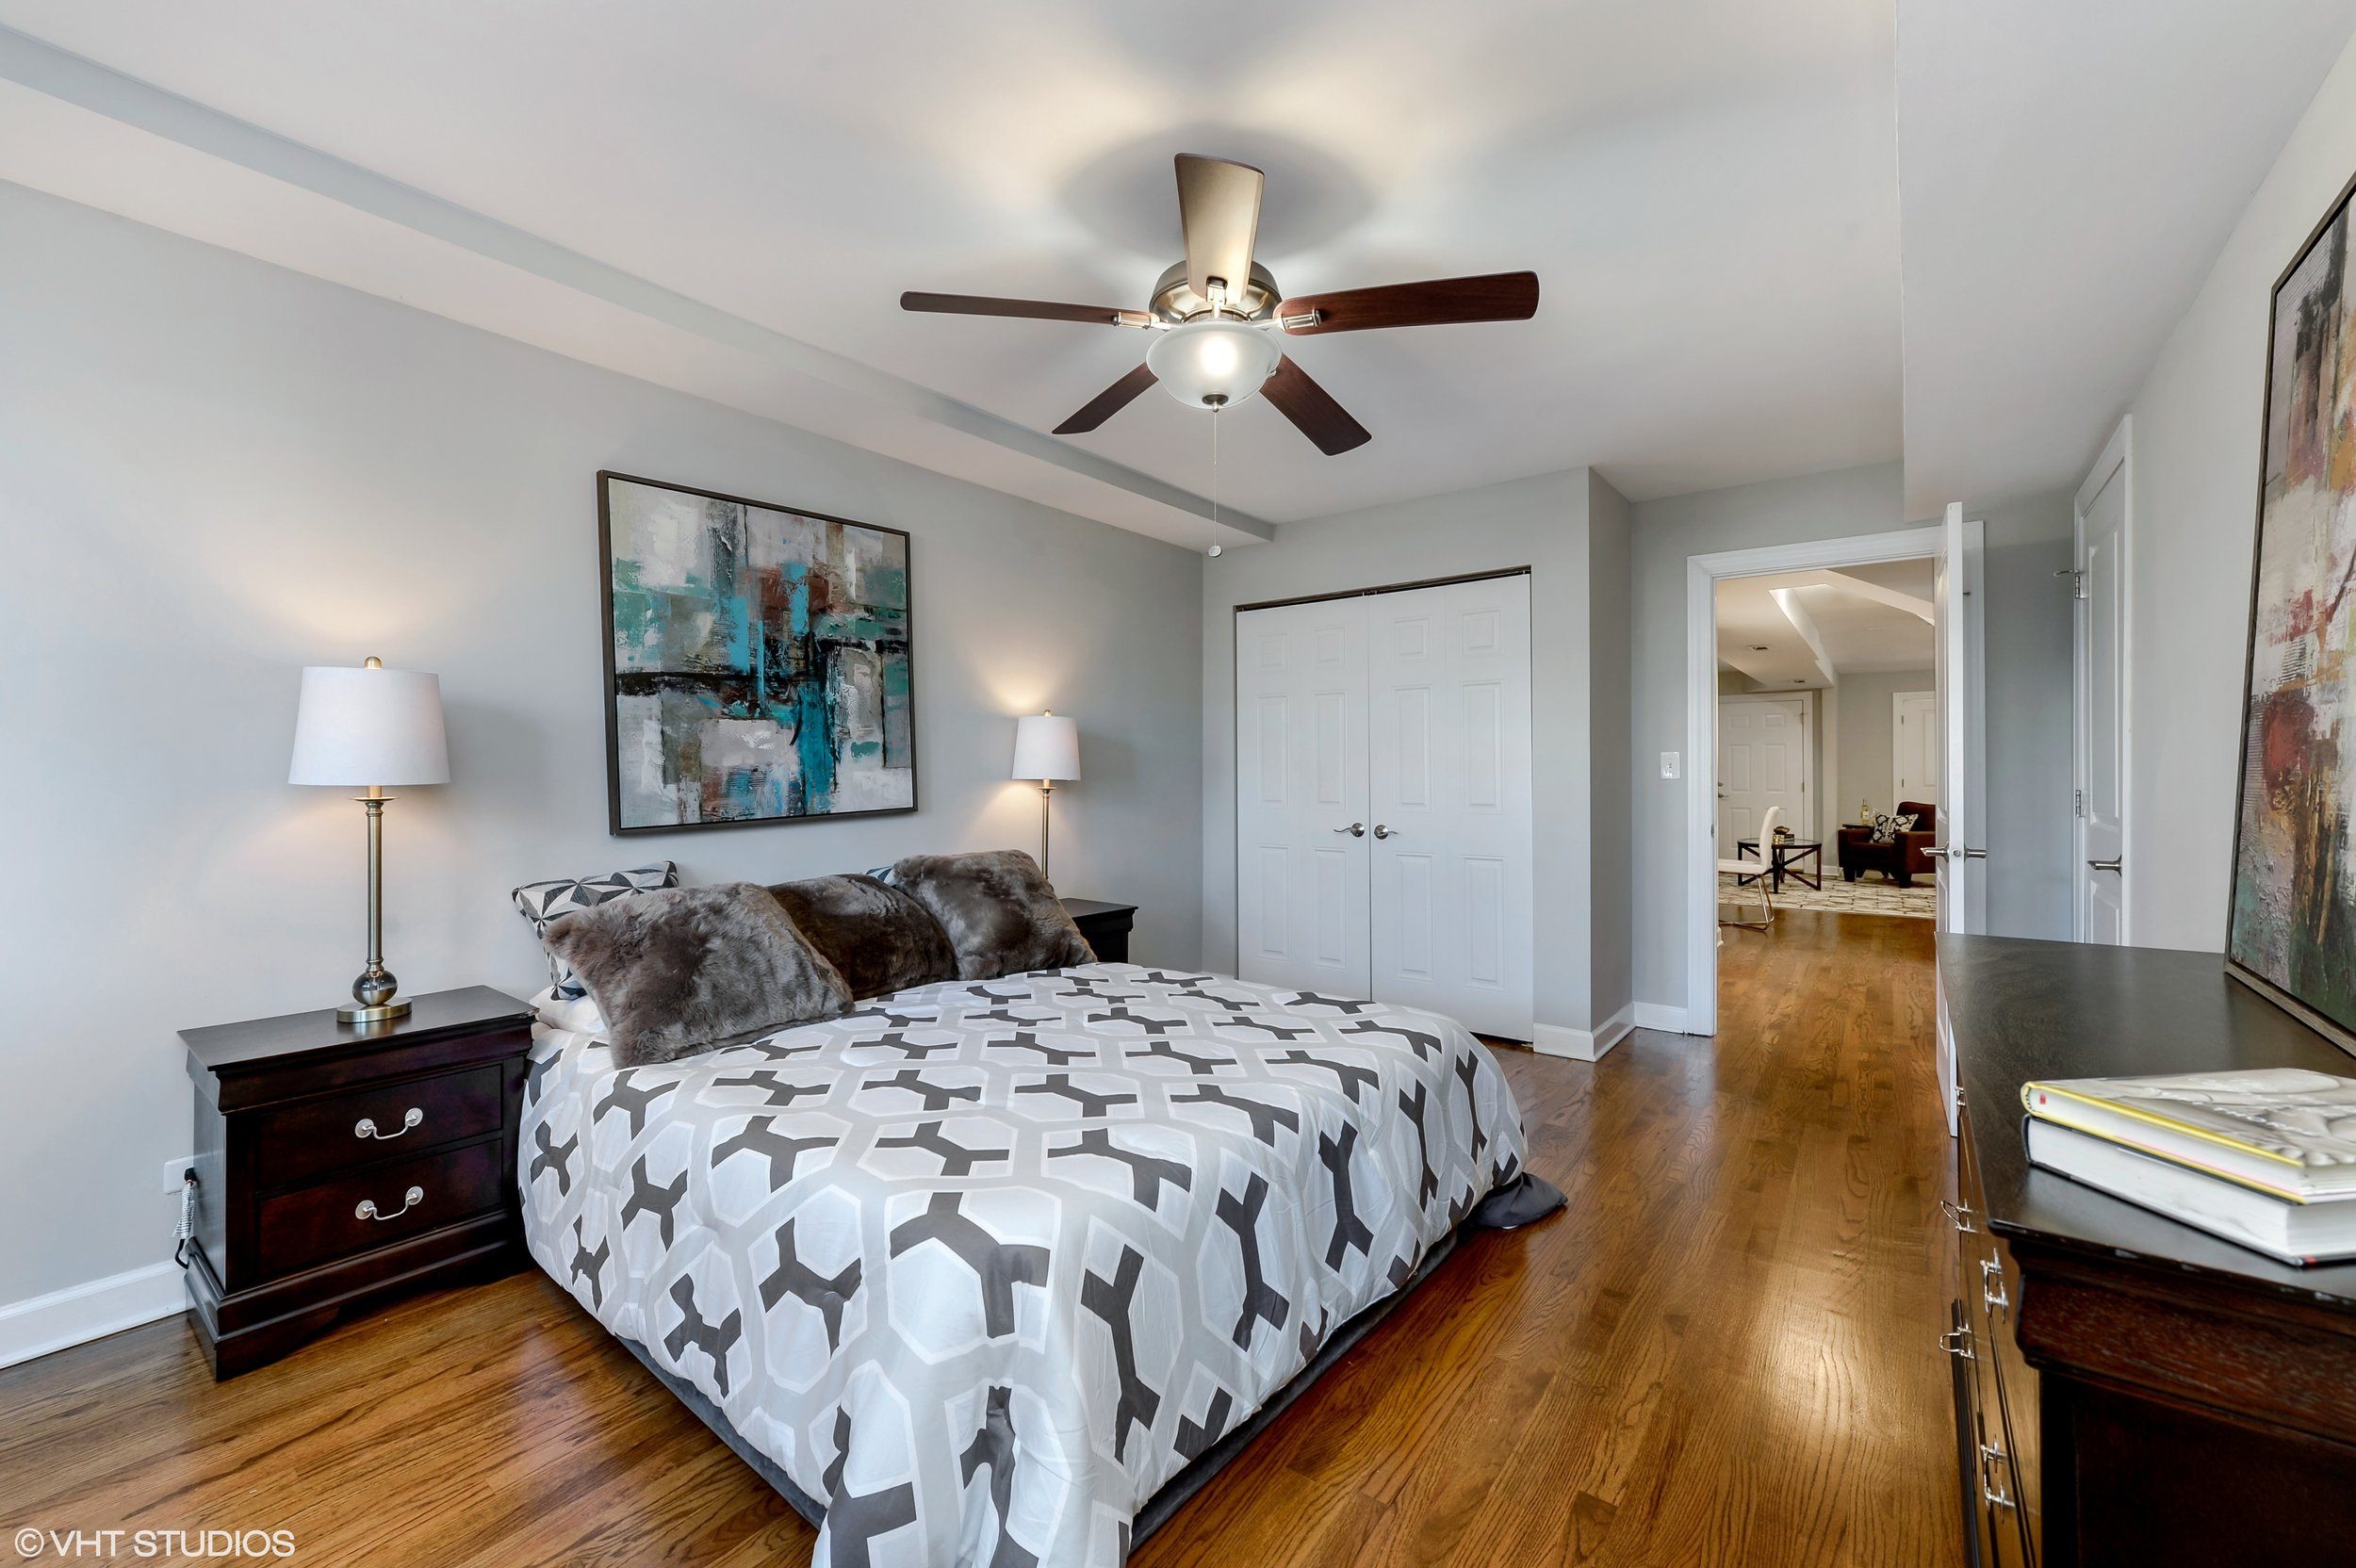 16_942NWoodStreet_Unit1_154001_3rdBedroom_HiRes.jpg